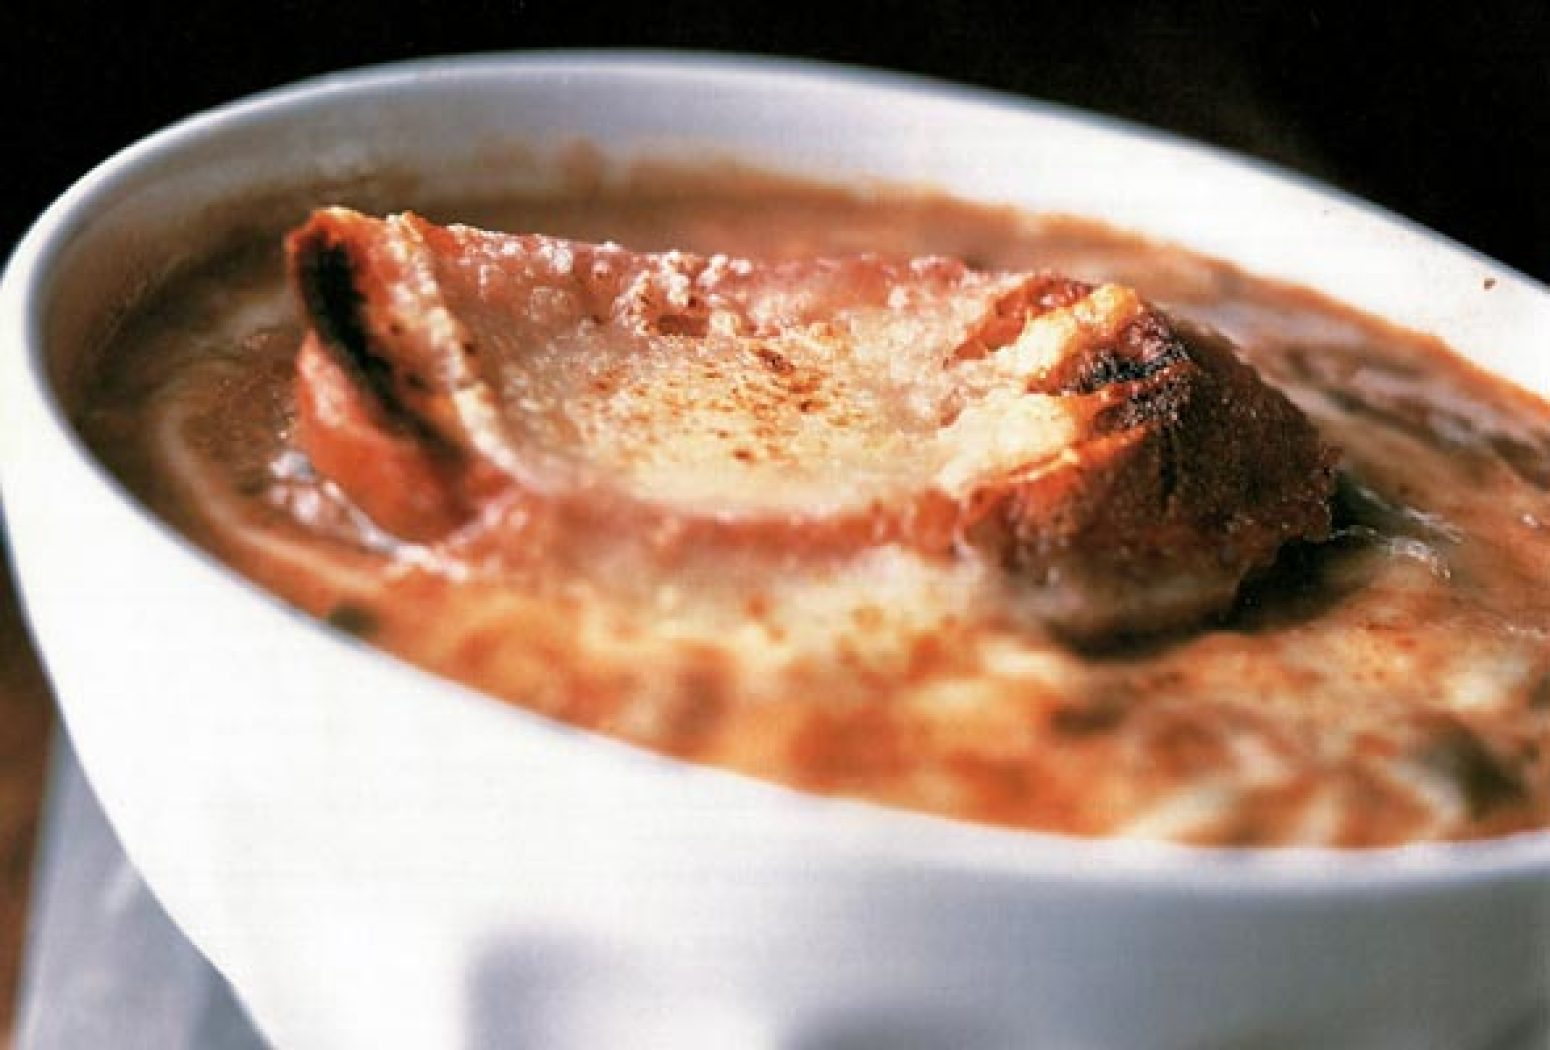 Gooey Cheesy Baked French Onion Soup Recipe | Just A Pinch ...